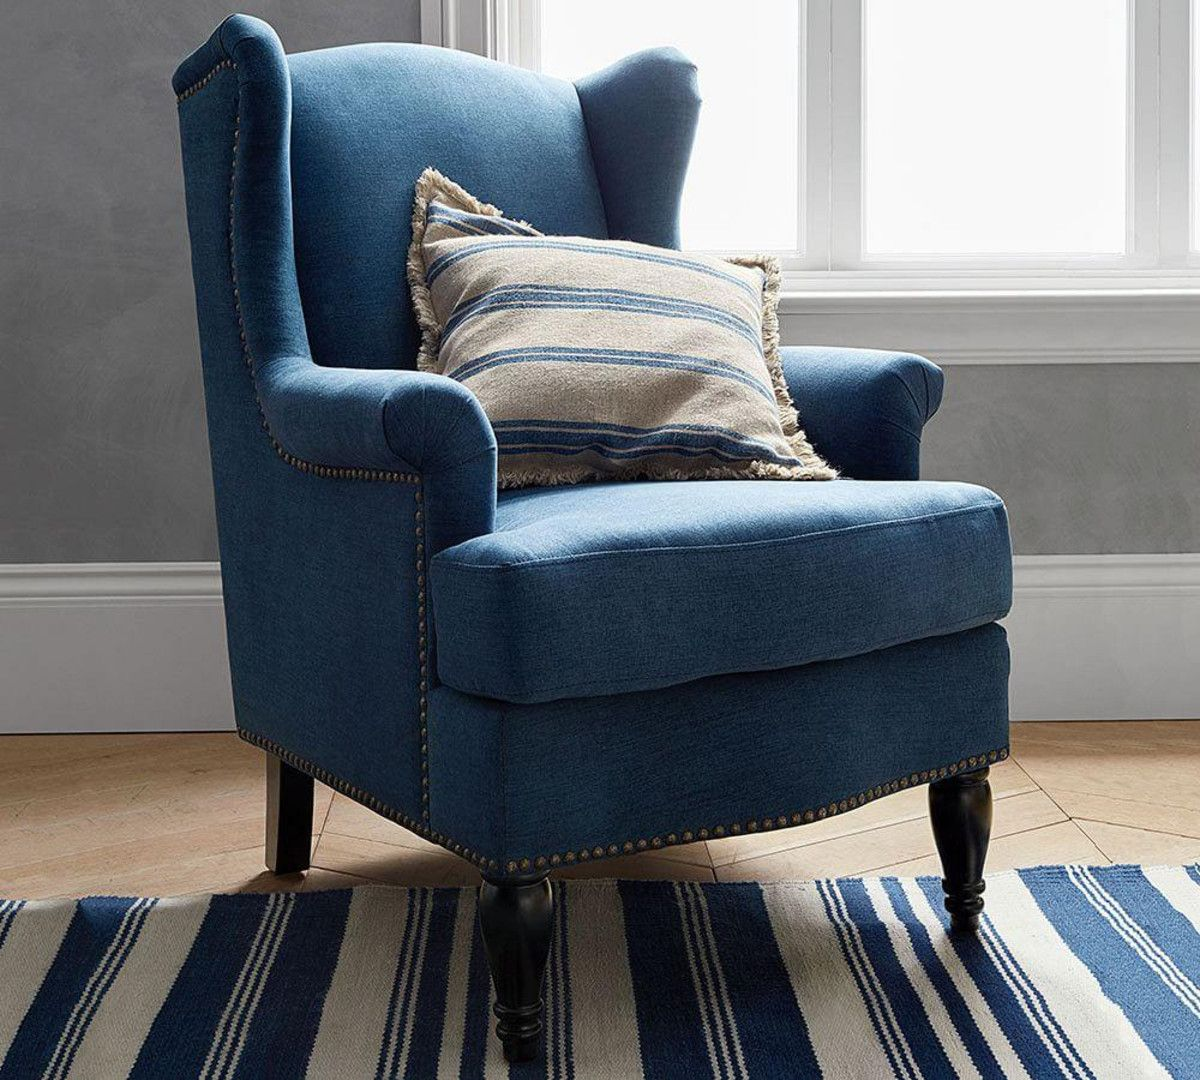 Superbe SoMa Delancey Wingback Upholstered Armchair | Pottery Barn AU